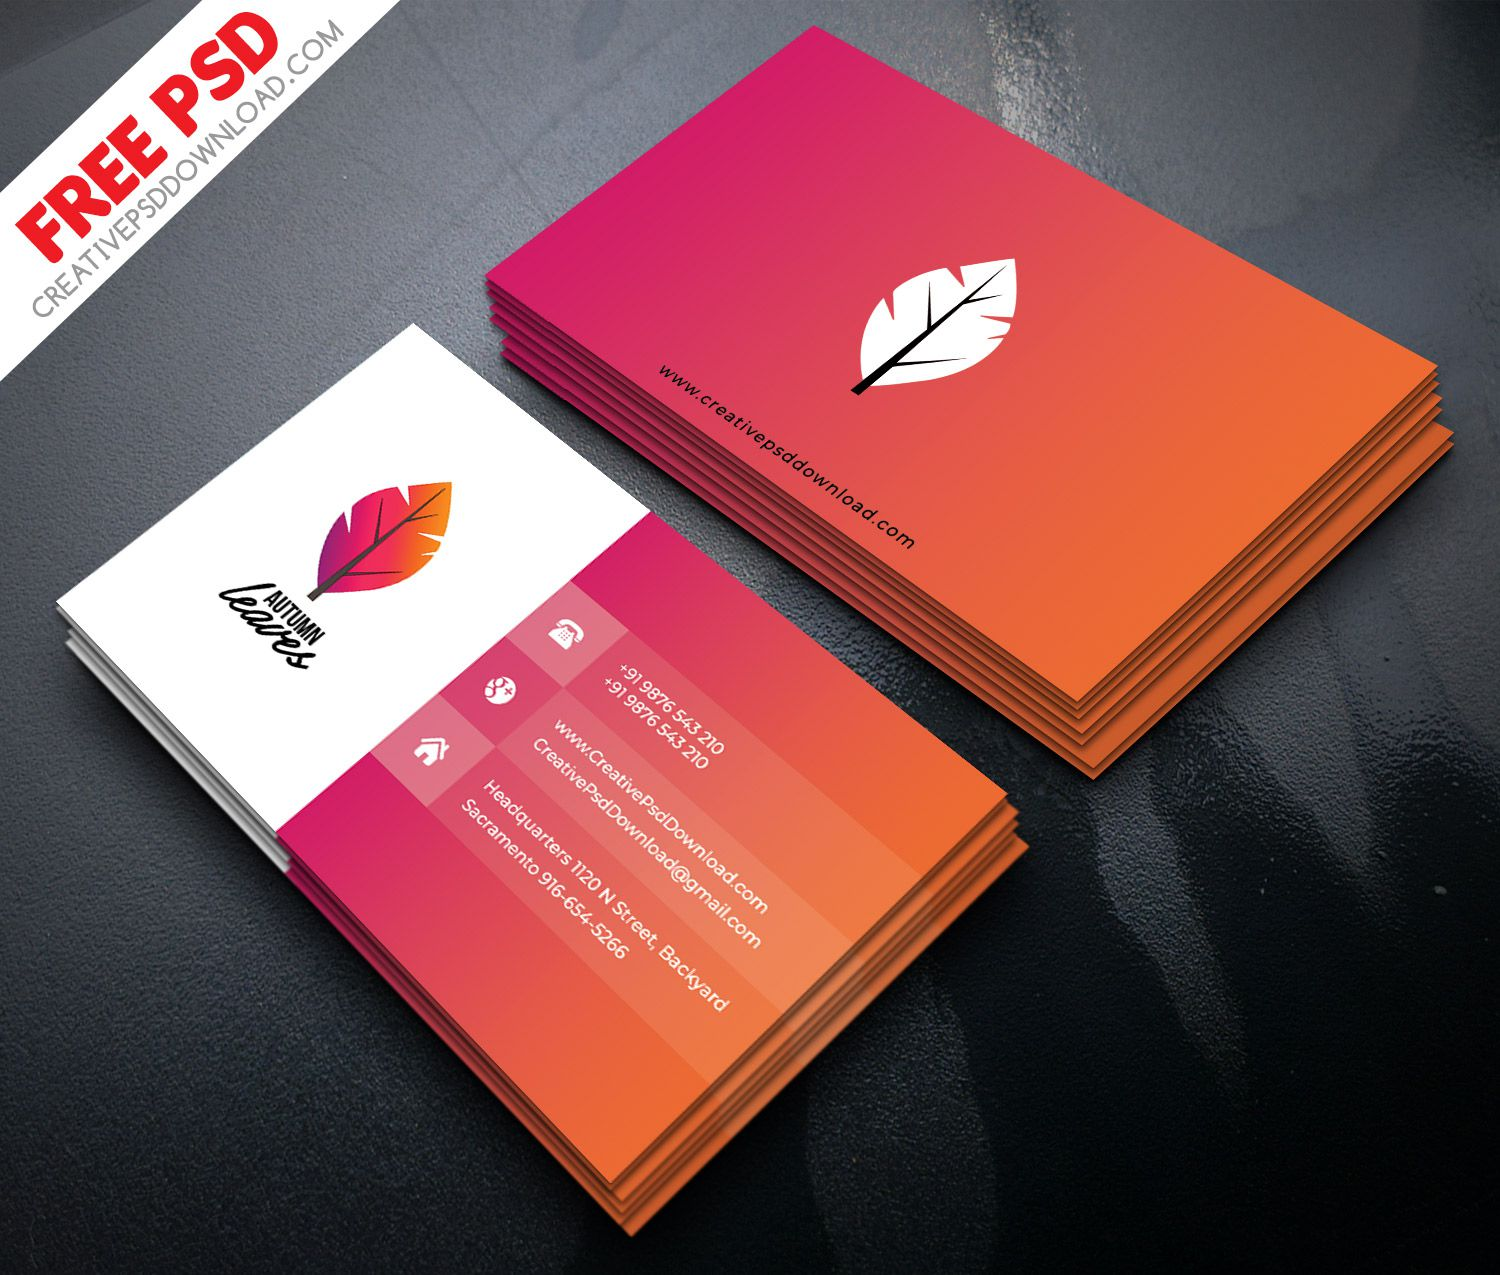 010 Wonderful Free Blank Busines Card Template Photoshop High Def  Download PsdFull